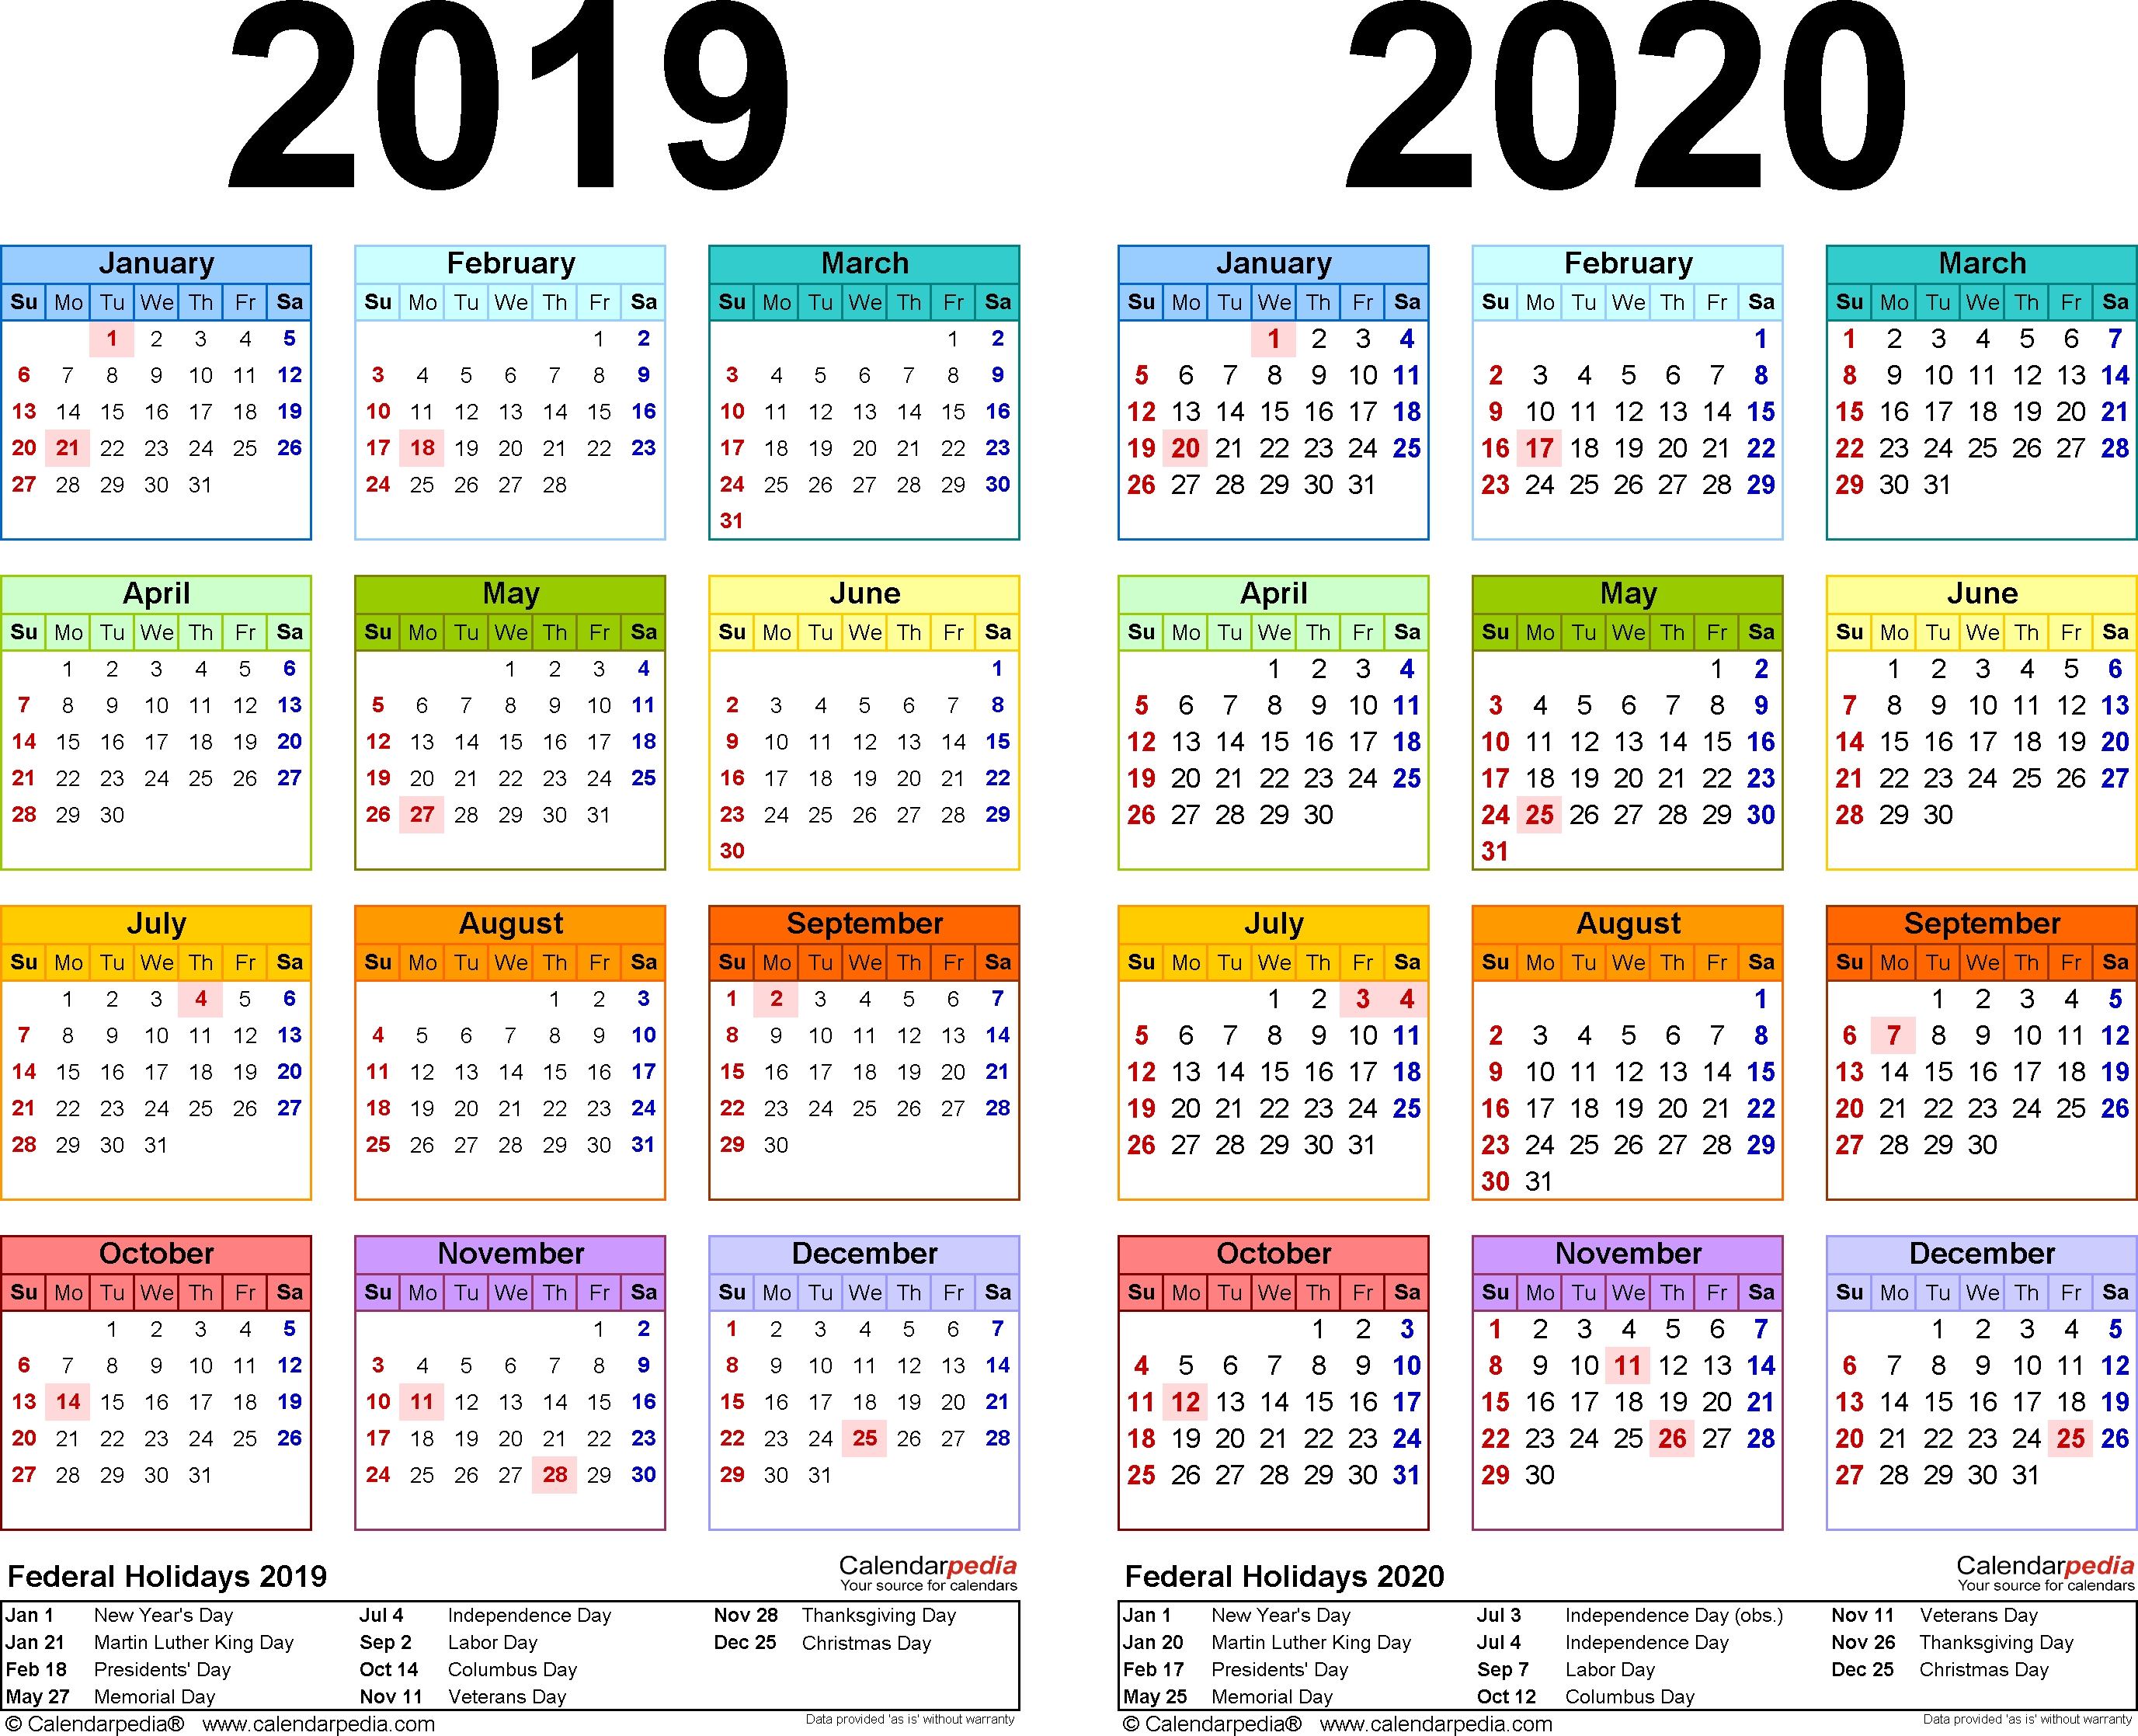 2019 2020 School Year Calendar With Holiday Us - Google-Calendar 2020 With Us Holidays Printable